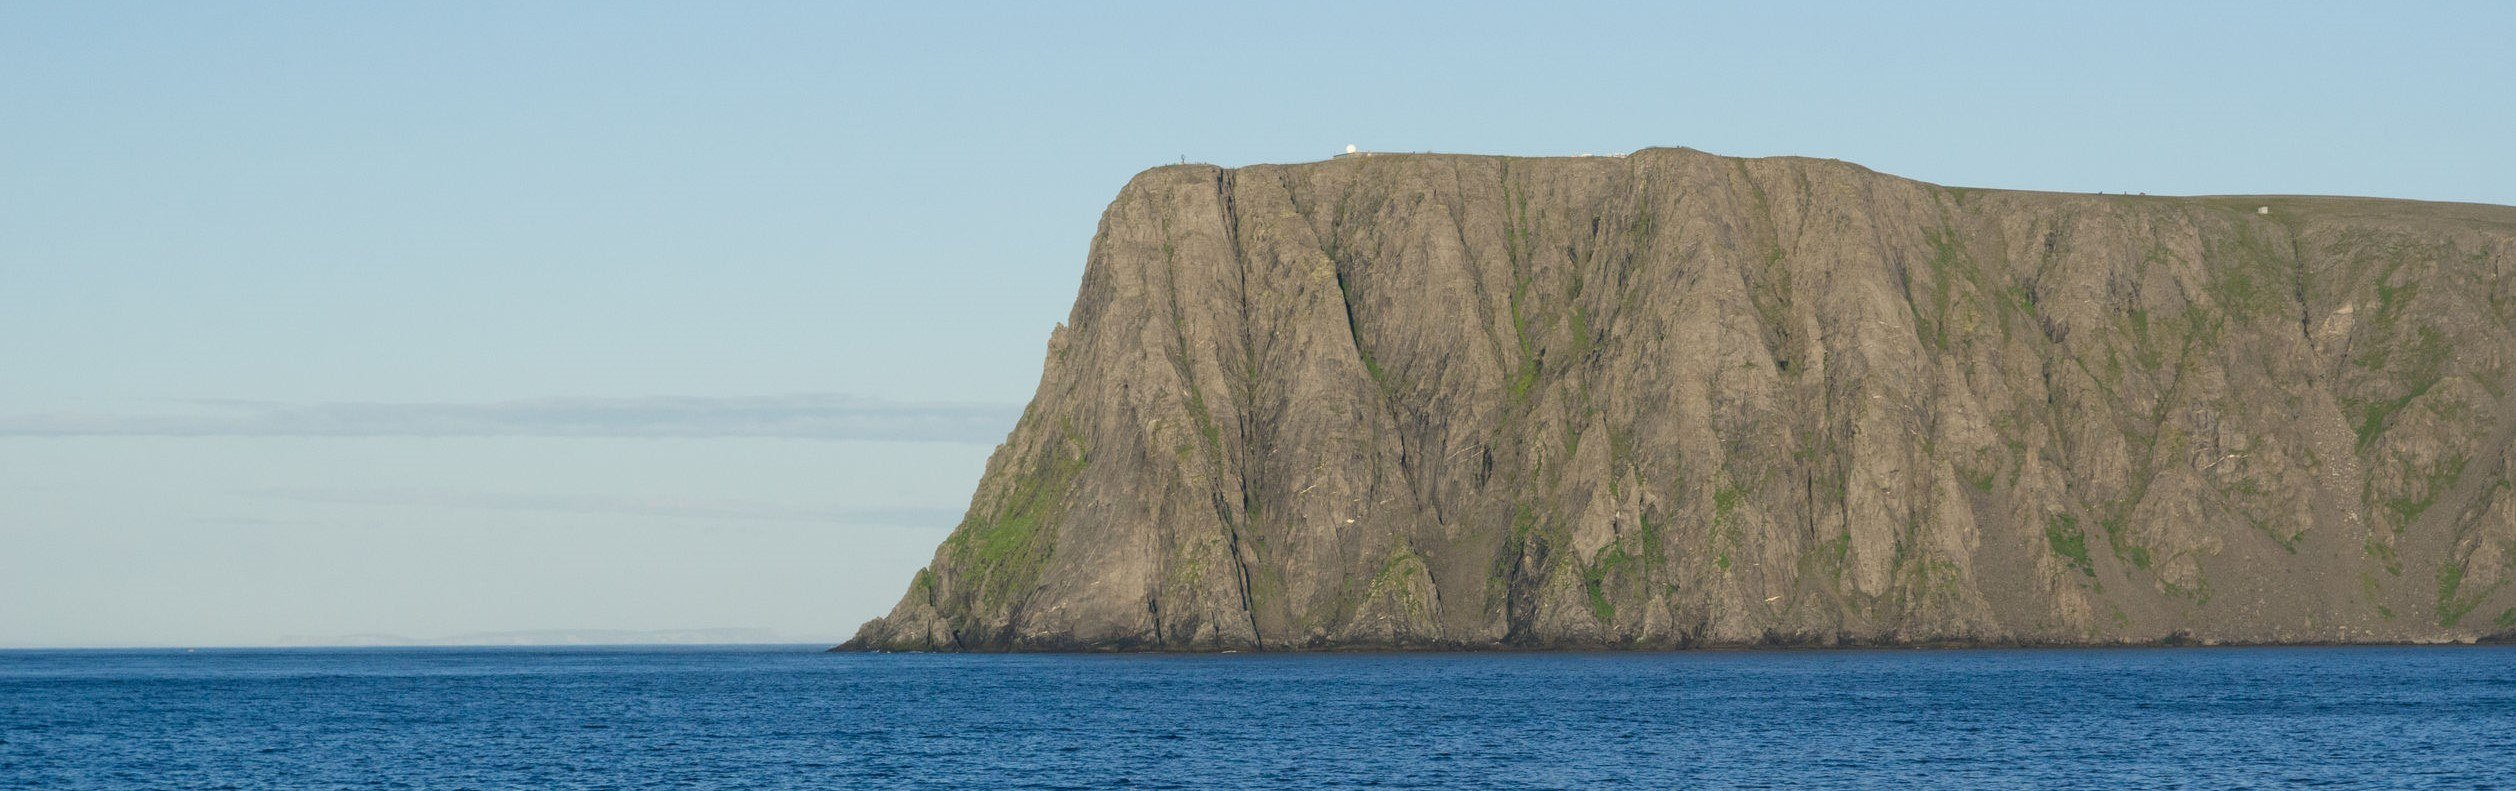 orth Cape with a steep cliff and a large flat plateau is in the Barents Sea.